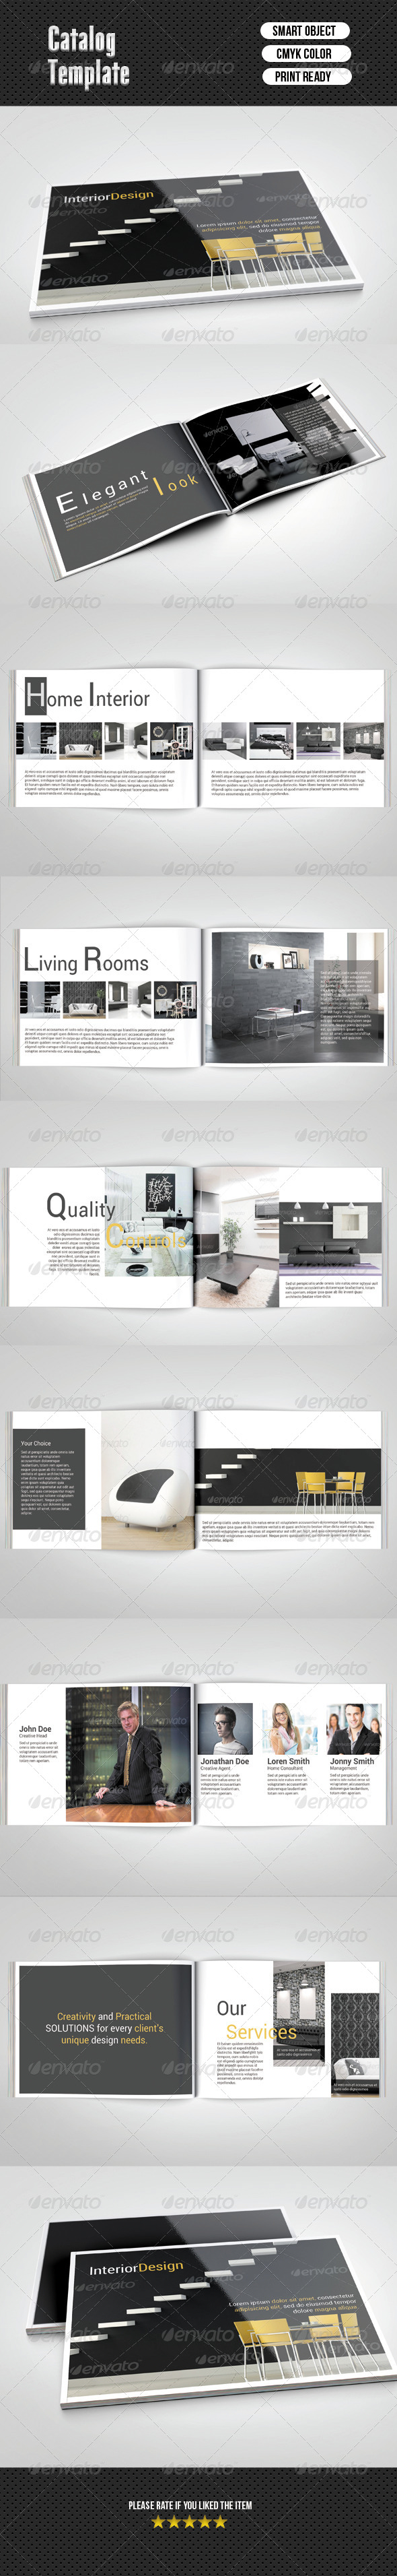 Catalog Psd Free Design Brochure 16 Pages Corporate